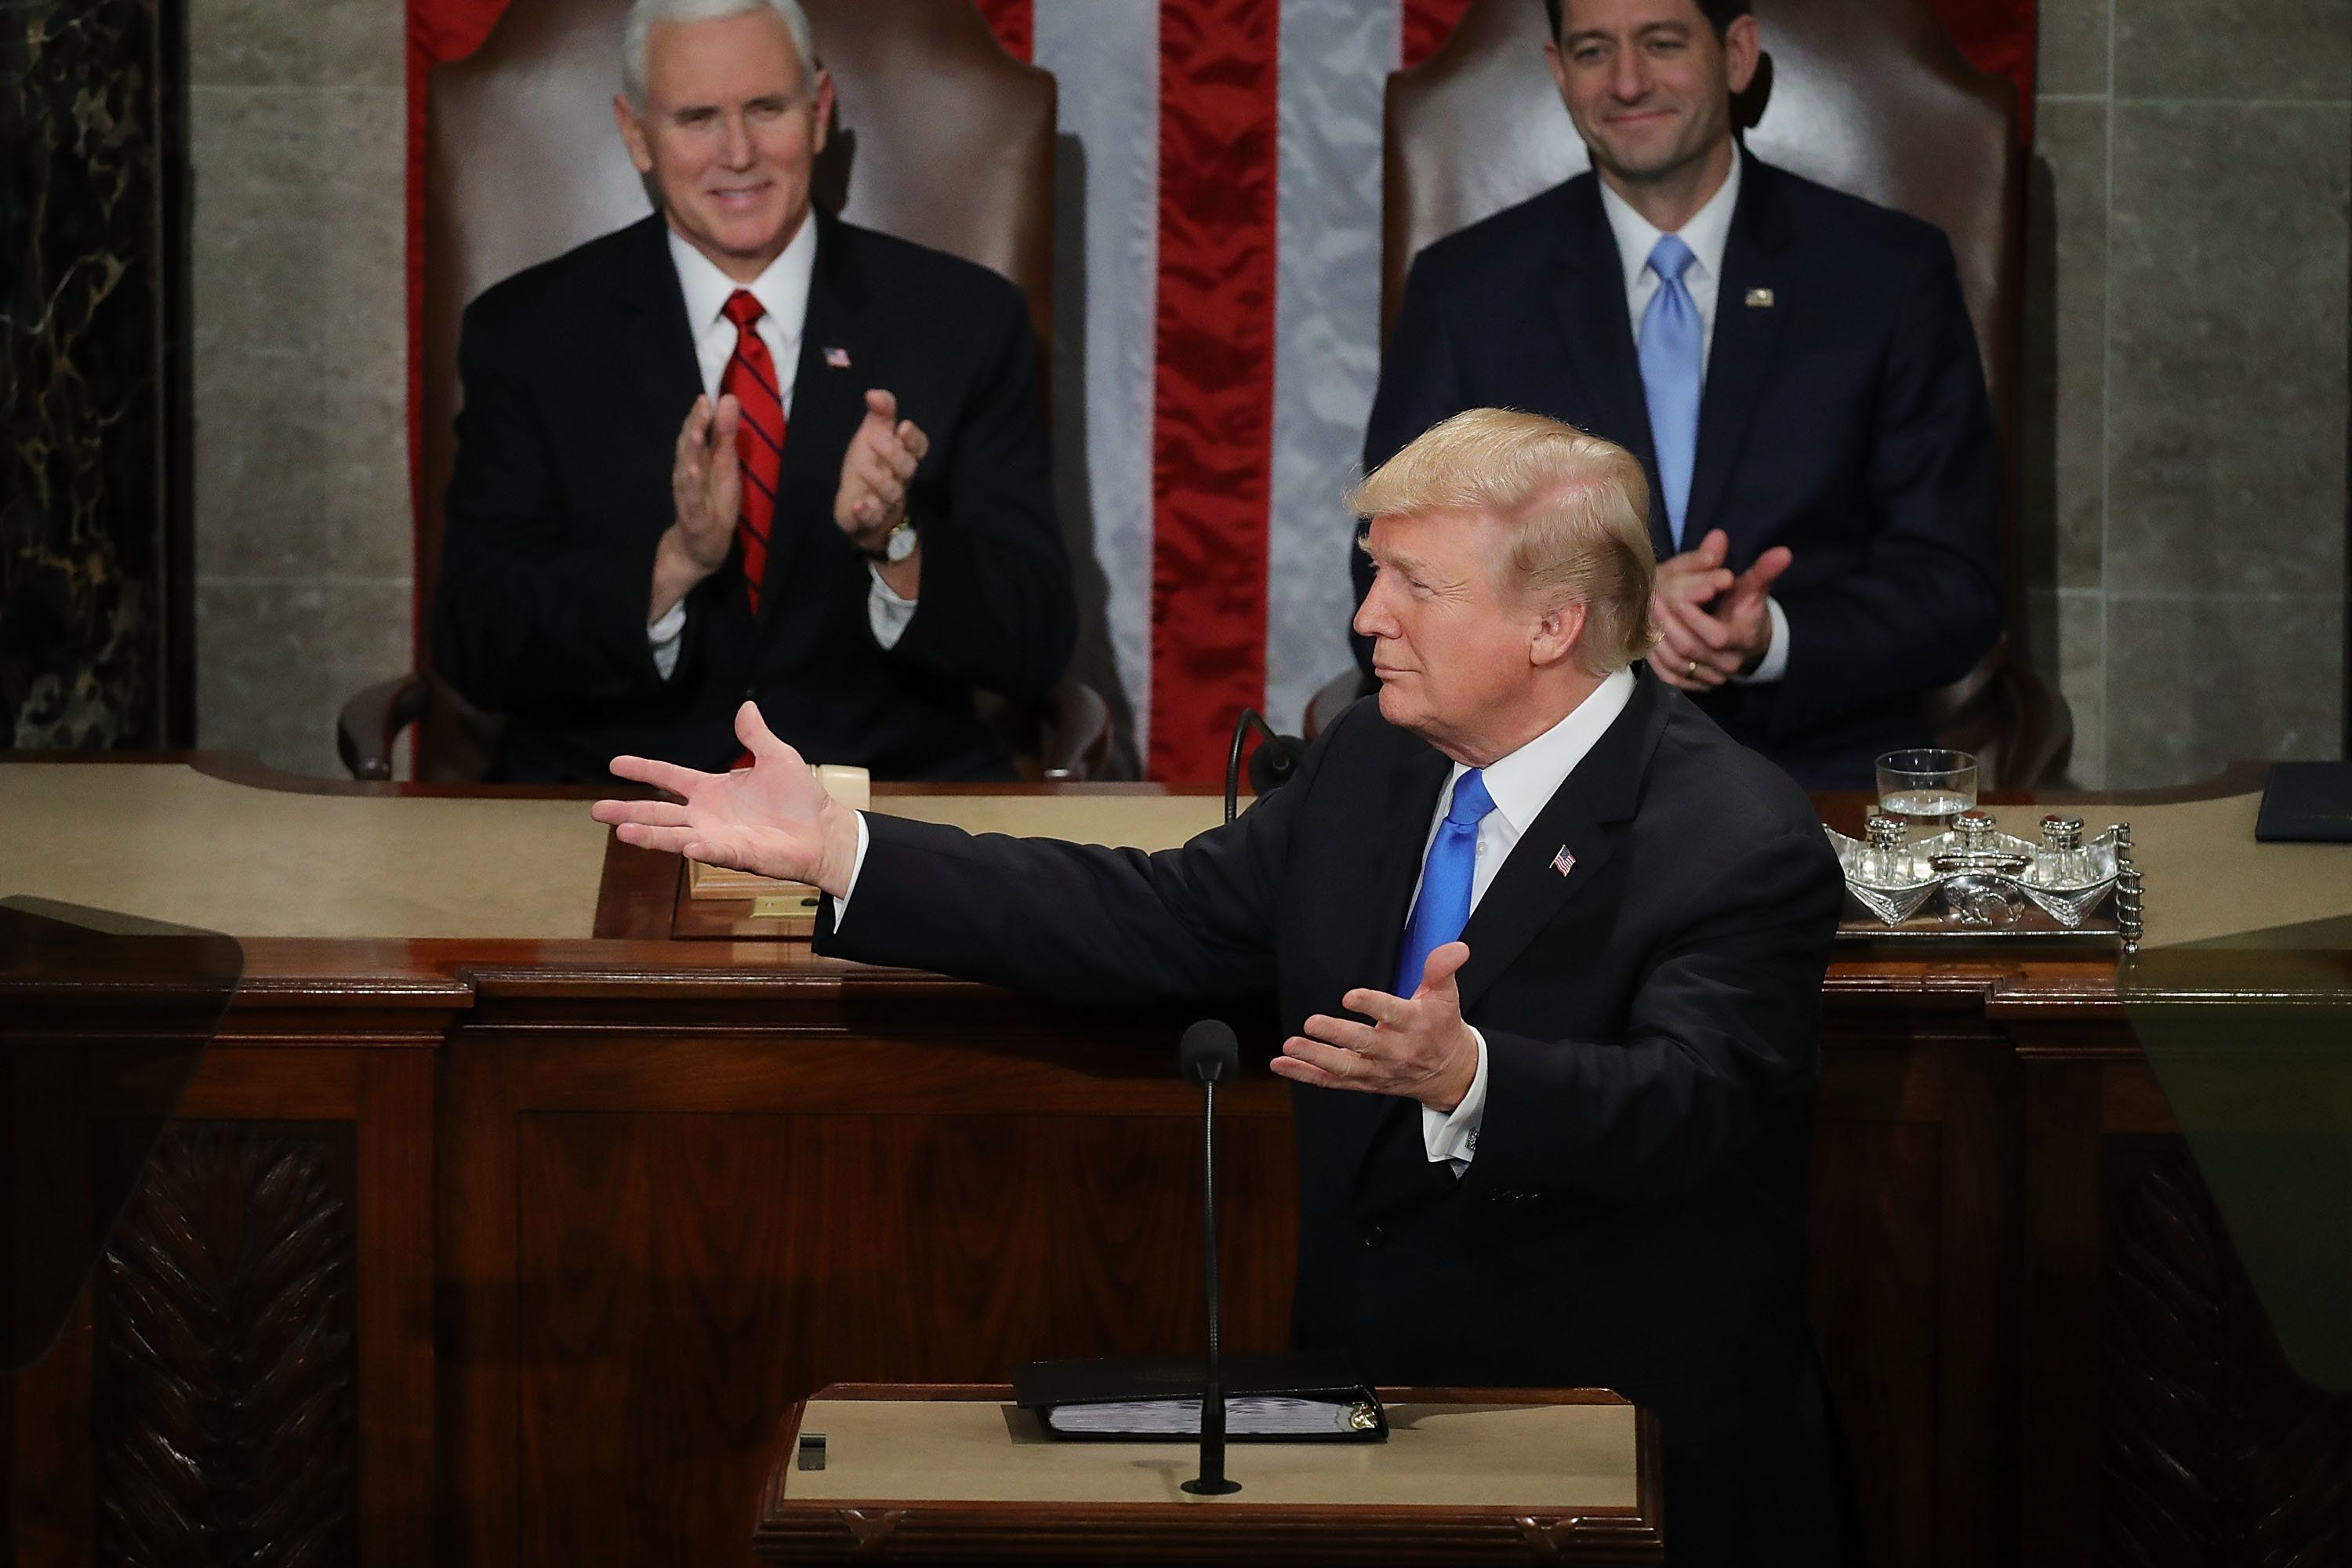 WASHINGTON, DC - JANUARY 30:  U.S. President Donald J. Trump delivers the State of the Union address as U.S. Vice President Mike Pence (L) and Speaker of the House U.S. Rep. Paul Ryan (R-WI) (R) look on in the chamber of the U.S. House of Representatives January 30, 2018 in Washington, DC. This is the first State of the Union address given by U.S. President Donald Trump and his second address to a joint meeting of Congress.  (Photo by Chip Somodevilla/Getty Images)